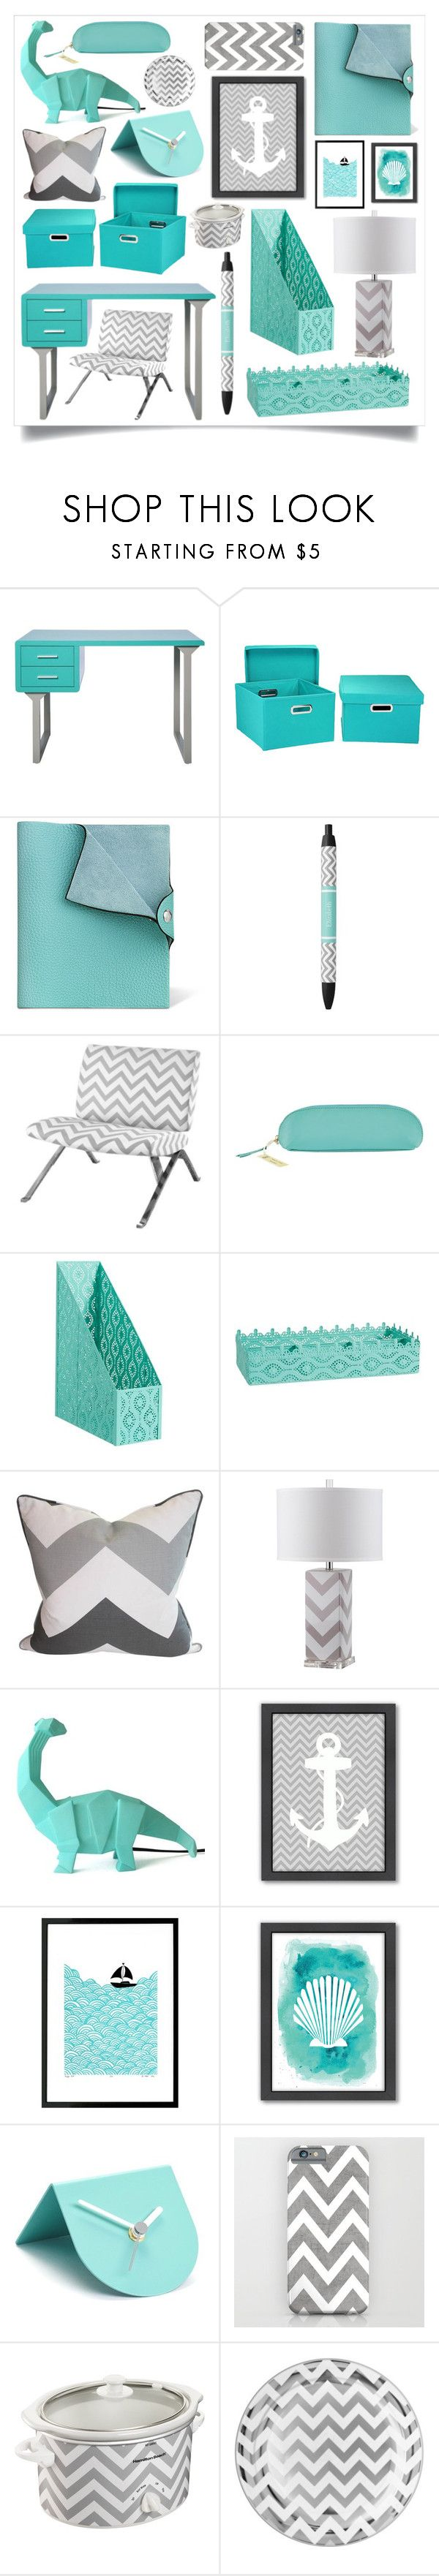 """""""Home Office (Turquoise & Chevron)"""" by iris913 ❤ liked on Polyvore featuring interior, interiors, interior design, home, home decor, interior decorating, I Love Living, Household Essentials, DK and Monarch"""